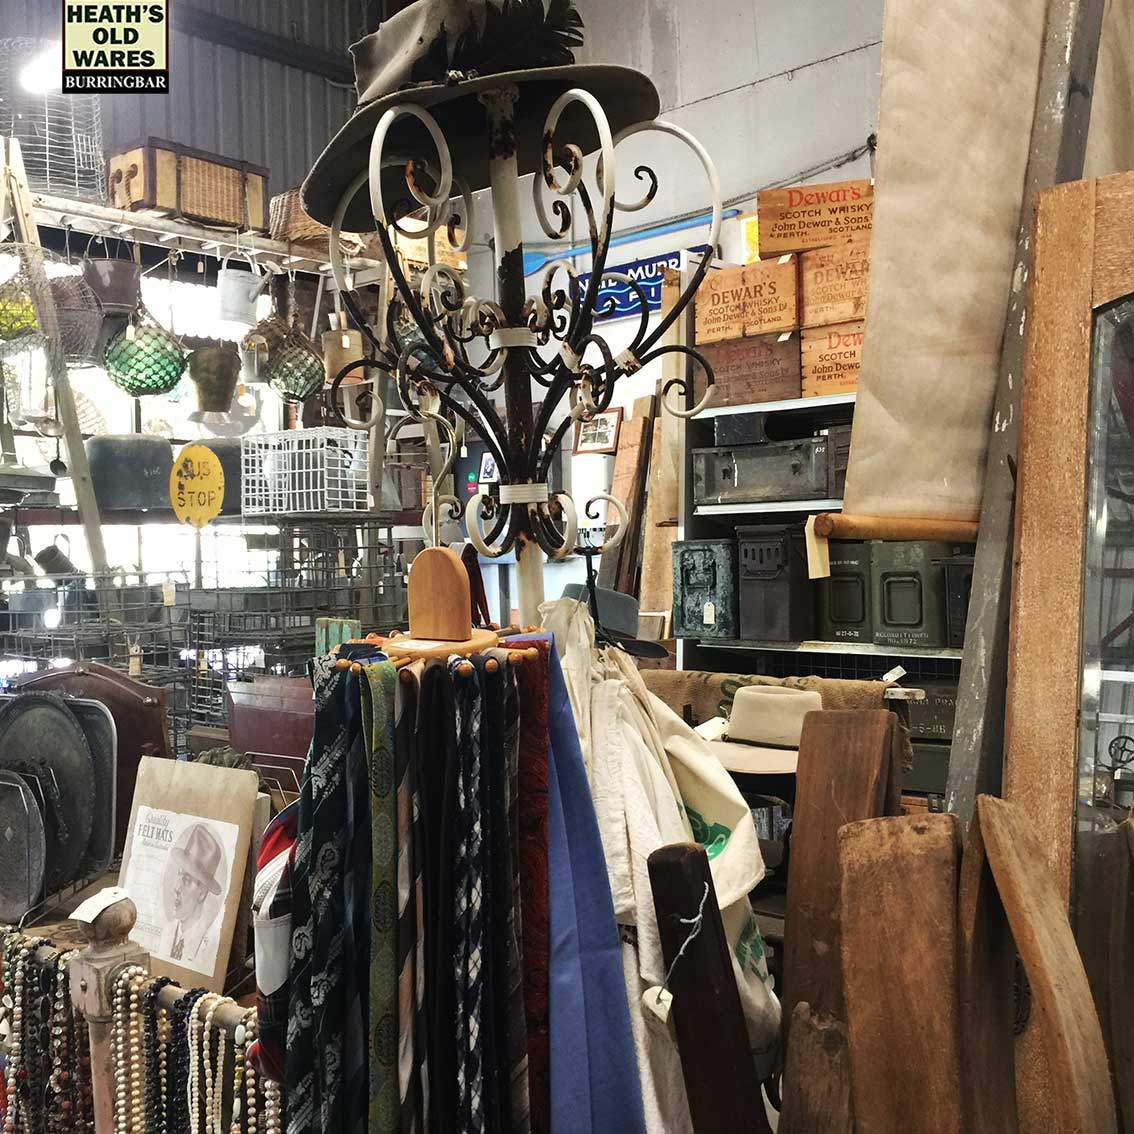 Vintage neck ties for sale at Heaths Old Wares, Collectables, Antiques & Industrial Antiques, 19-21 Broadway, Burringbar NSW 2483 Ph 0266771181 open 7 days